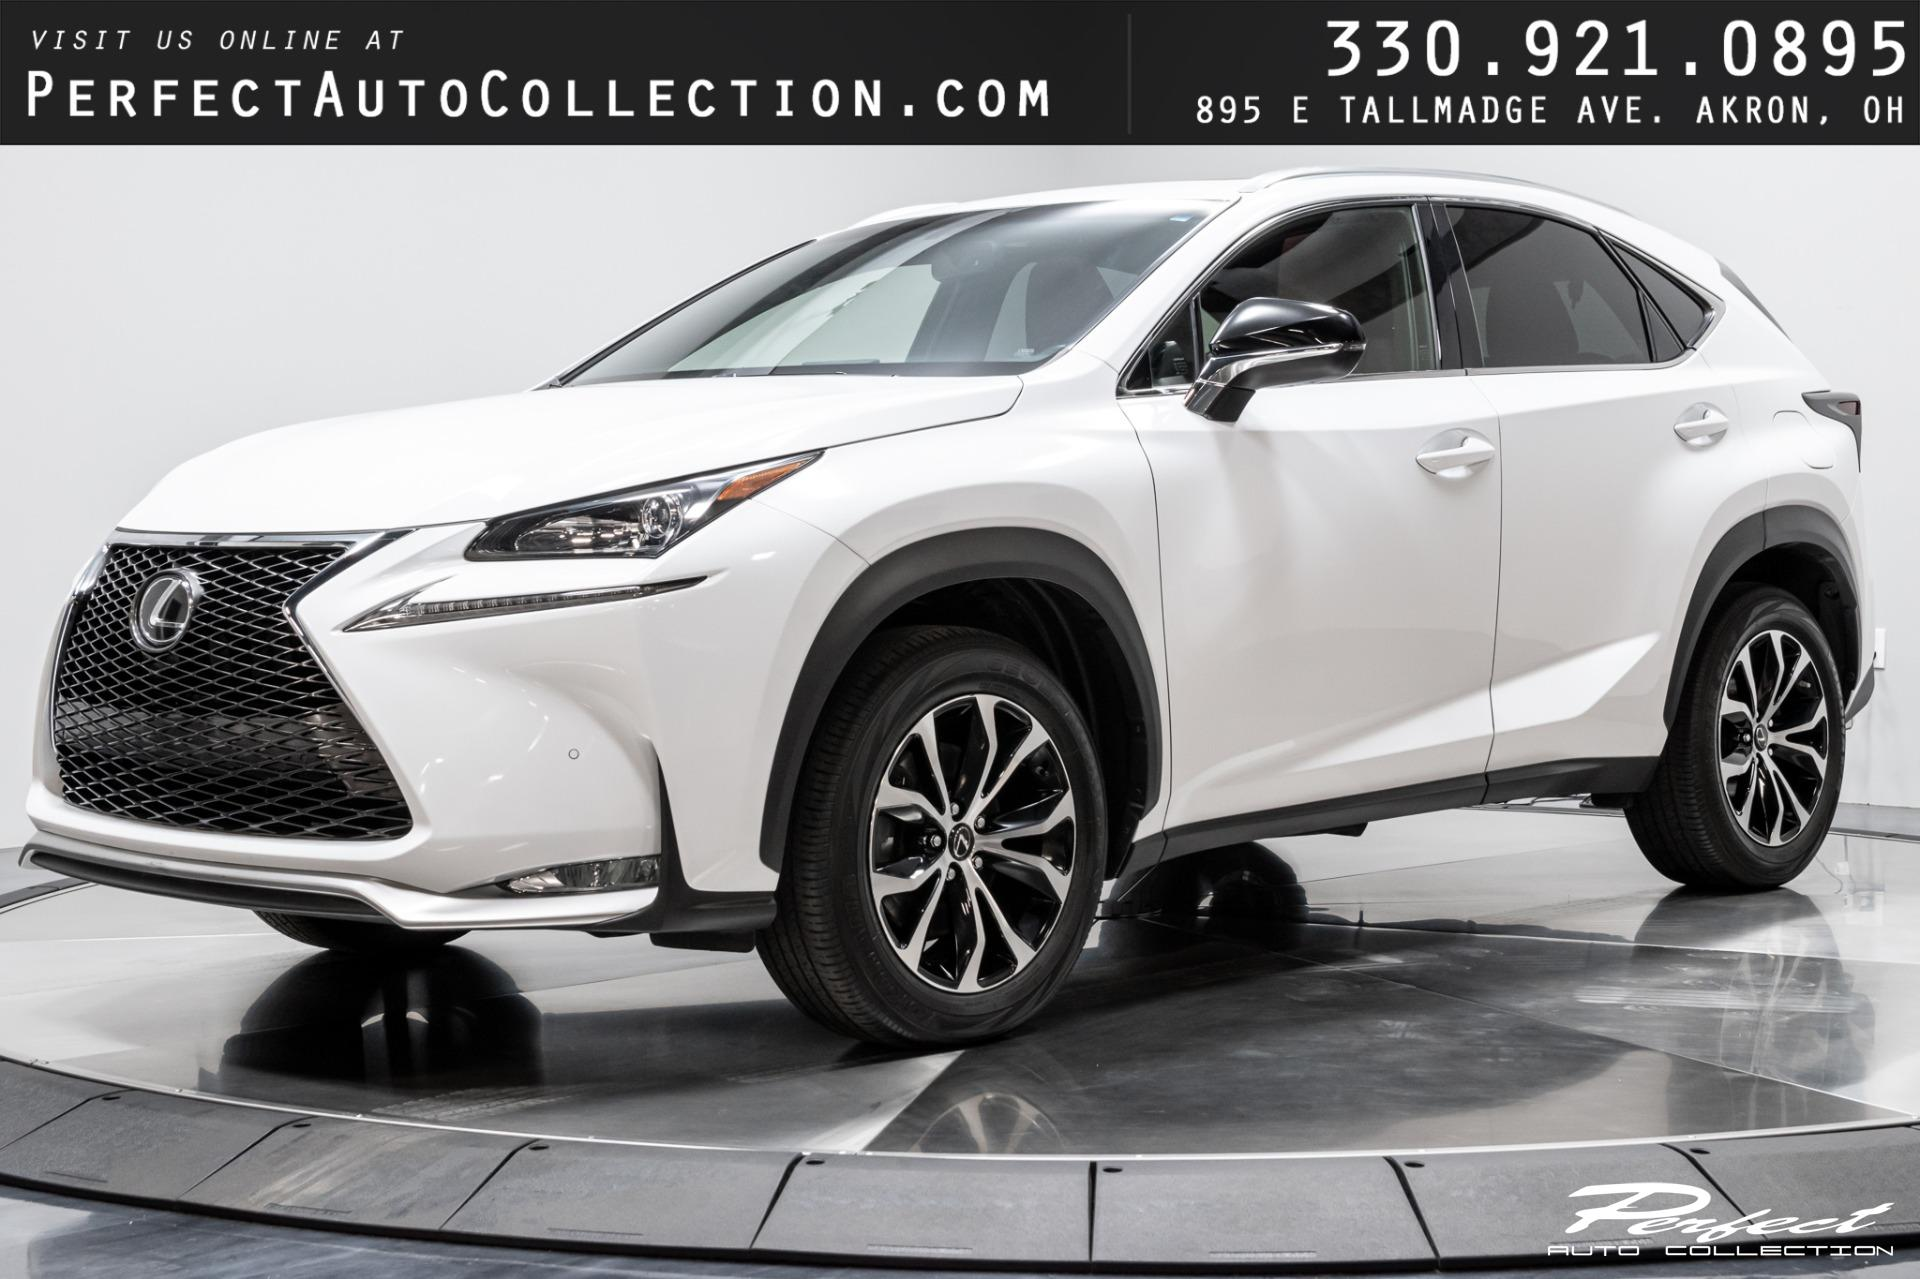 Used 2016 Lexus NX 200t F SPORT for sale Sold at Perfect Auto Collection in Akron OH 44310 1